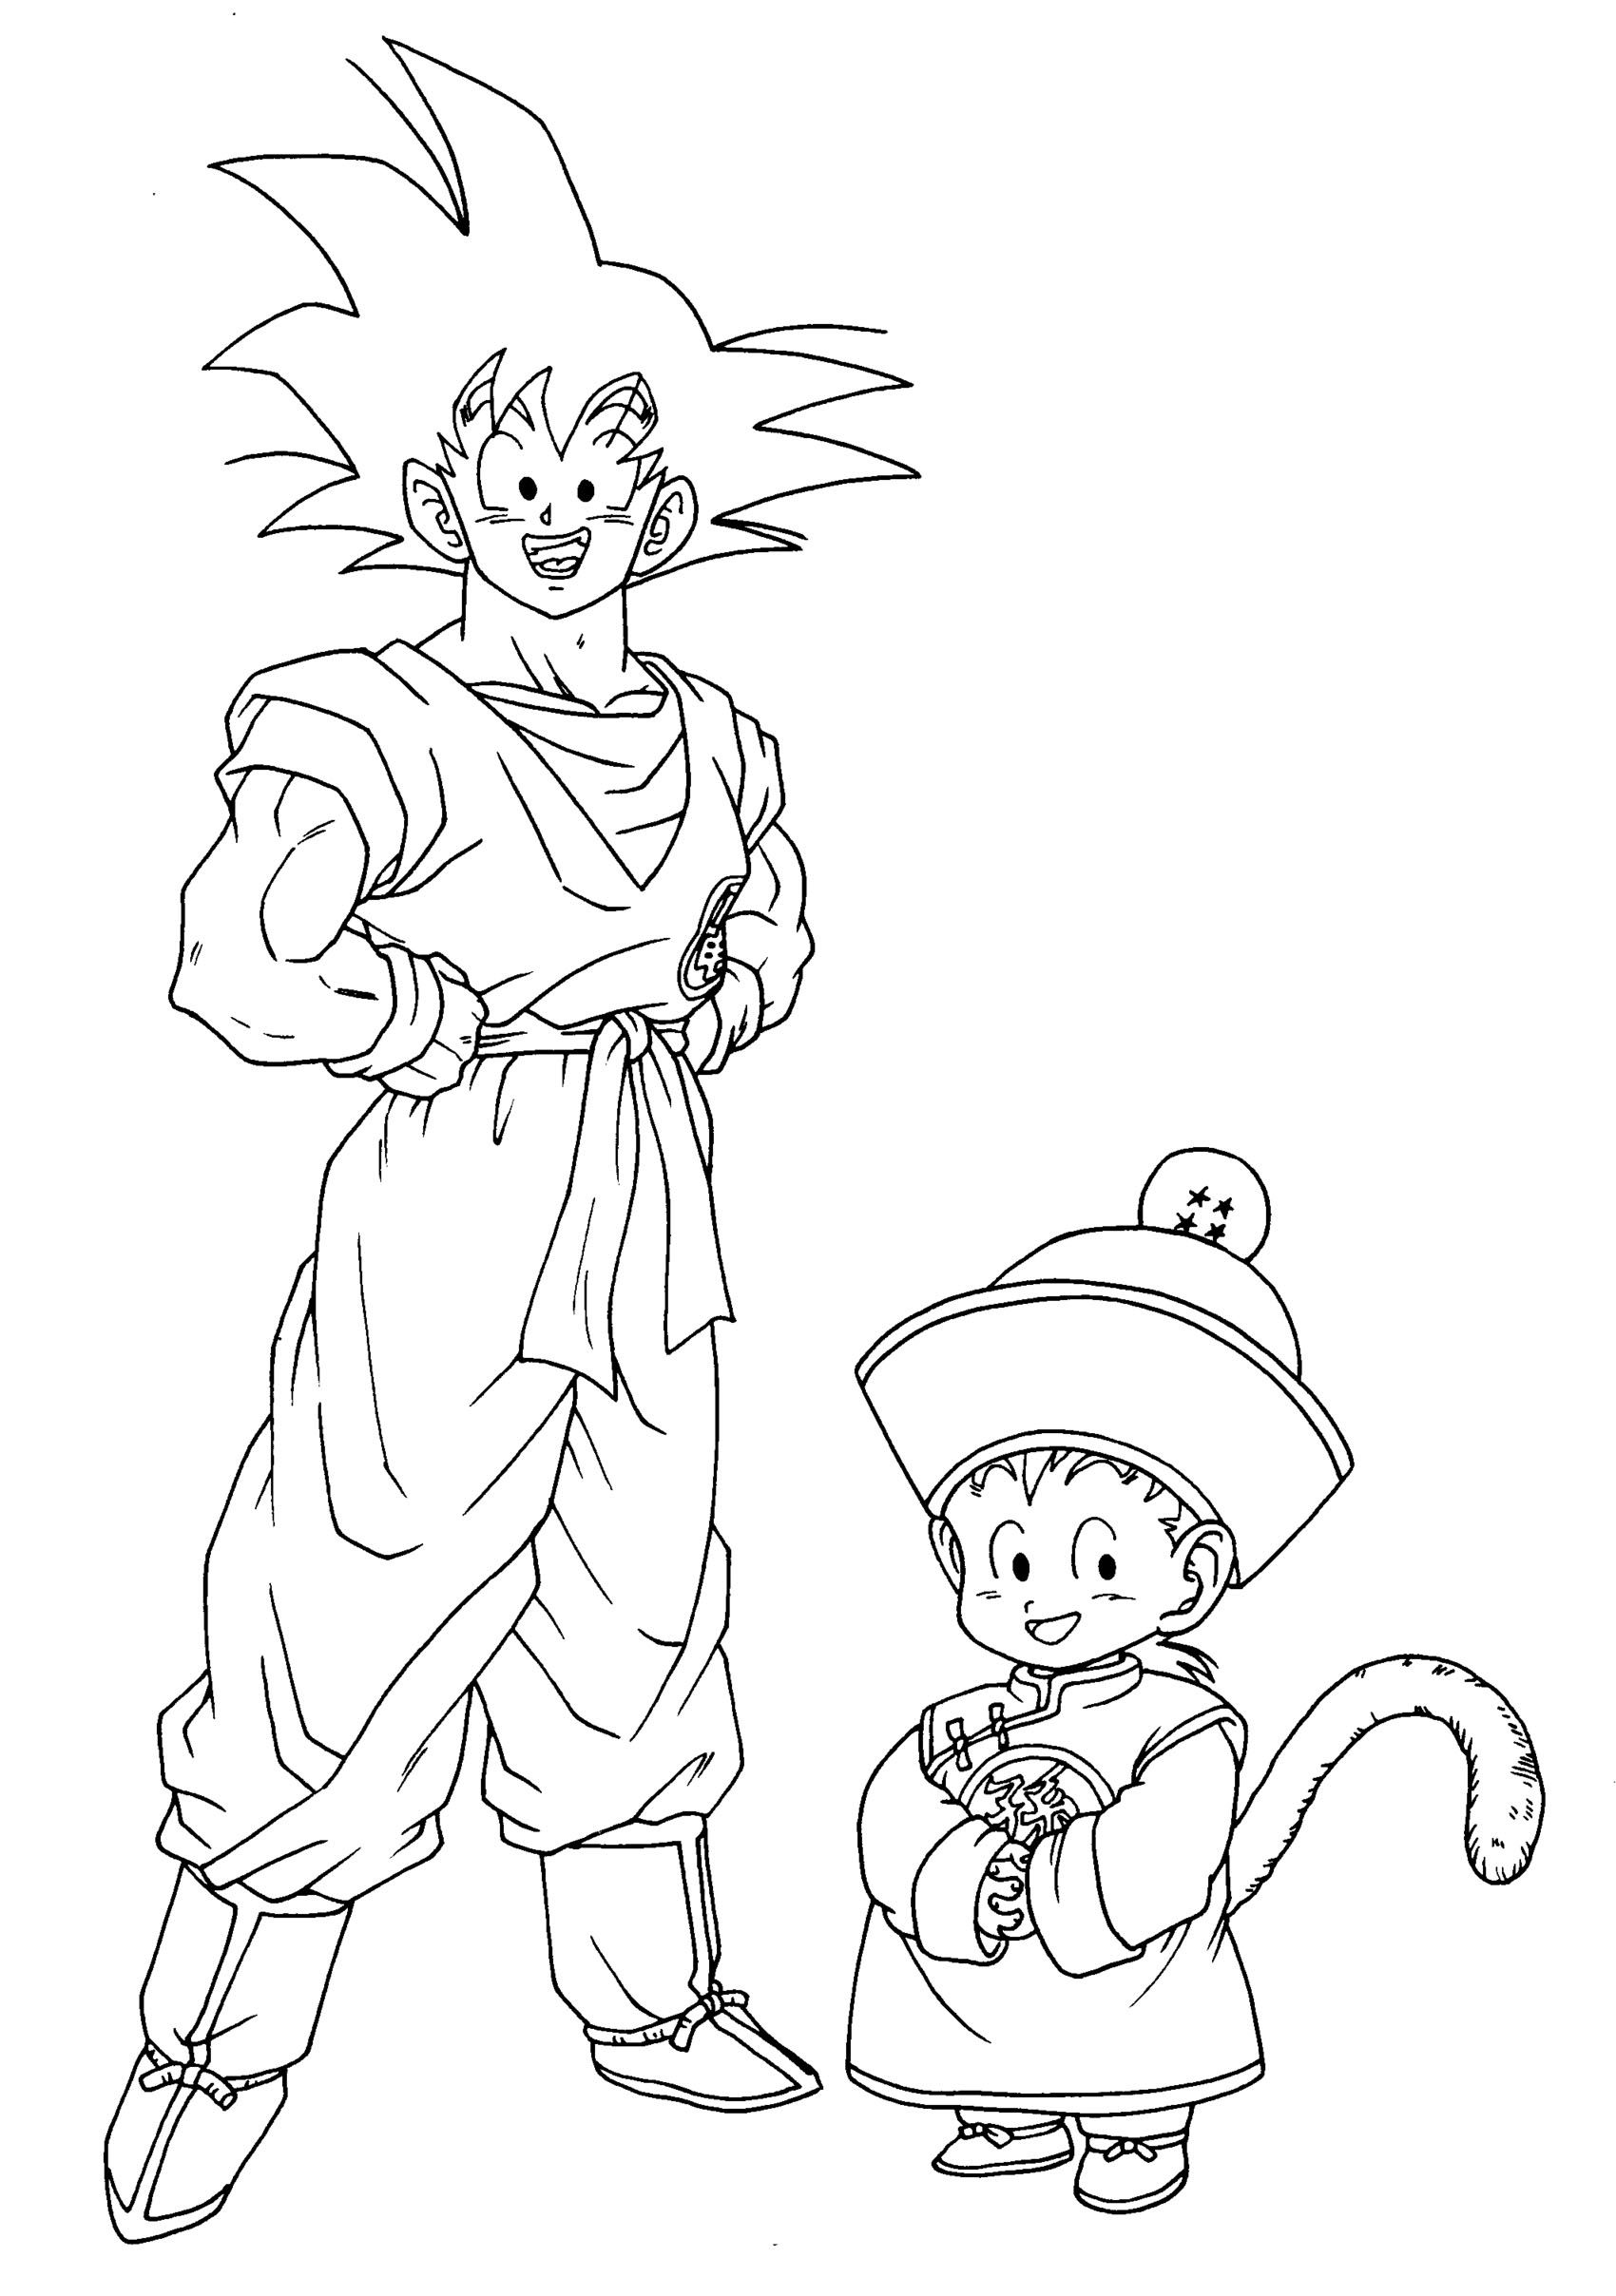 Dragon Ball Z coloring page with few details for kids : Songoku and Songohan